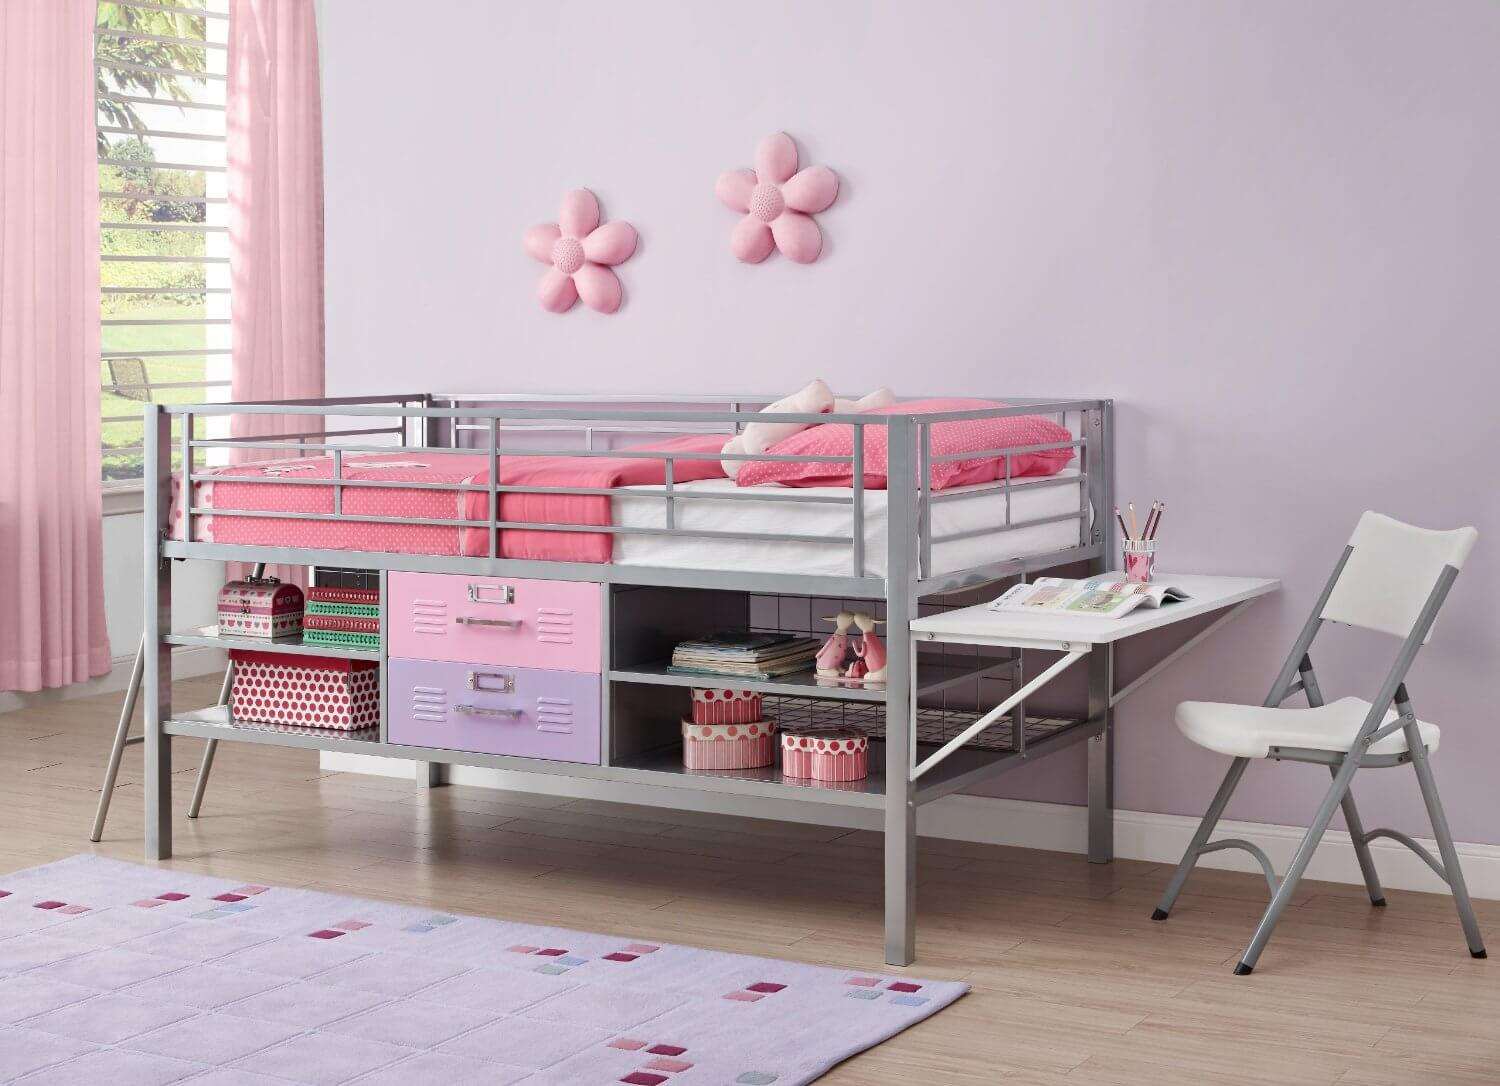 Loft Beds for Kids with Desk  For a Price You Can Afford  LoftBedDeals.com